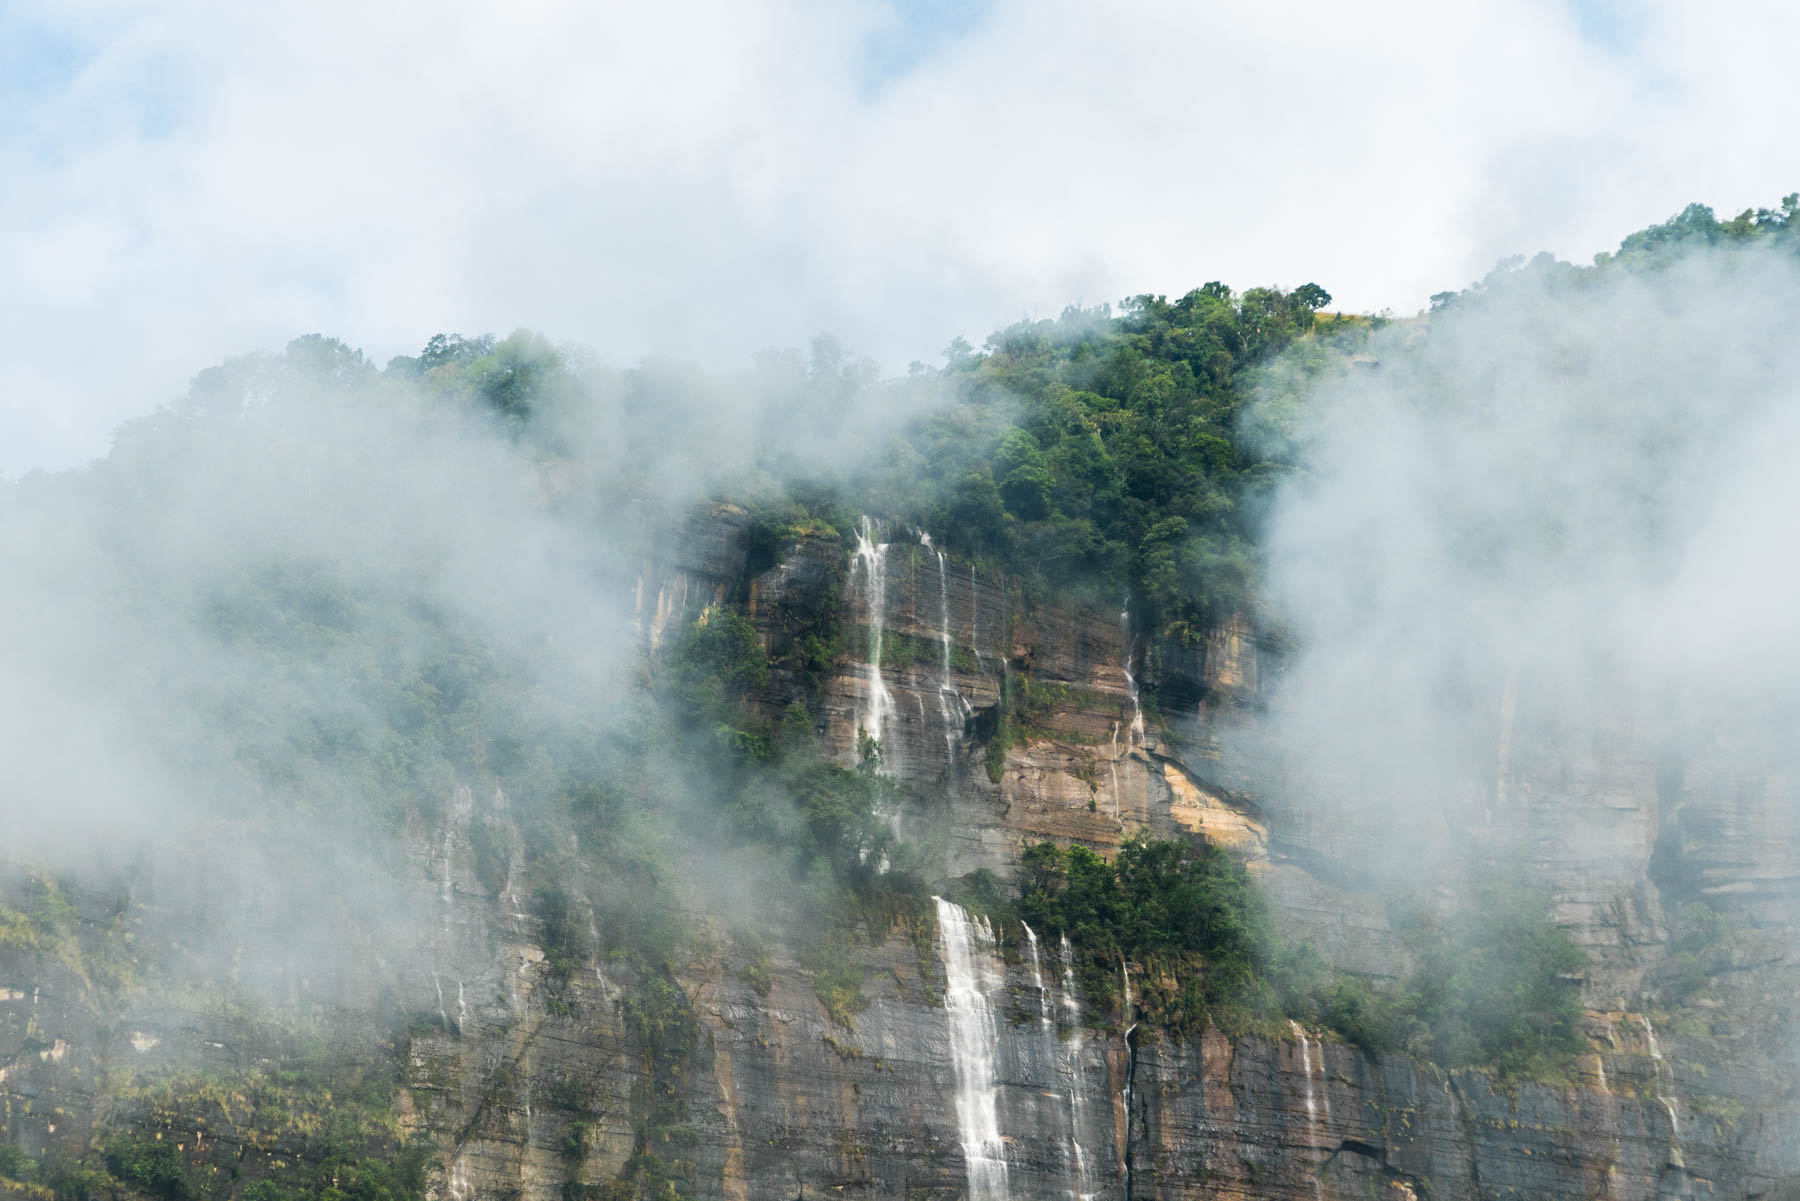 Waterfalls and clouds over Nongriat village